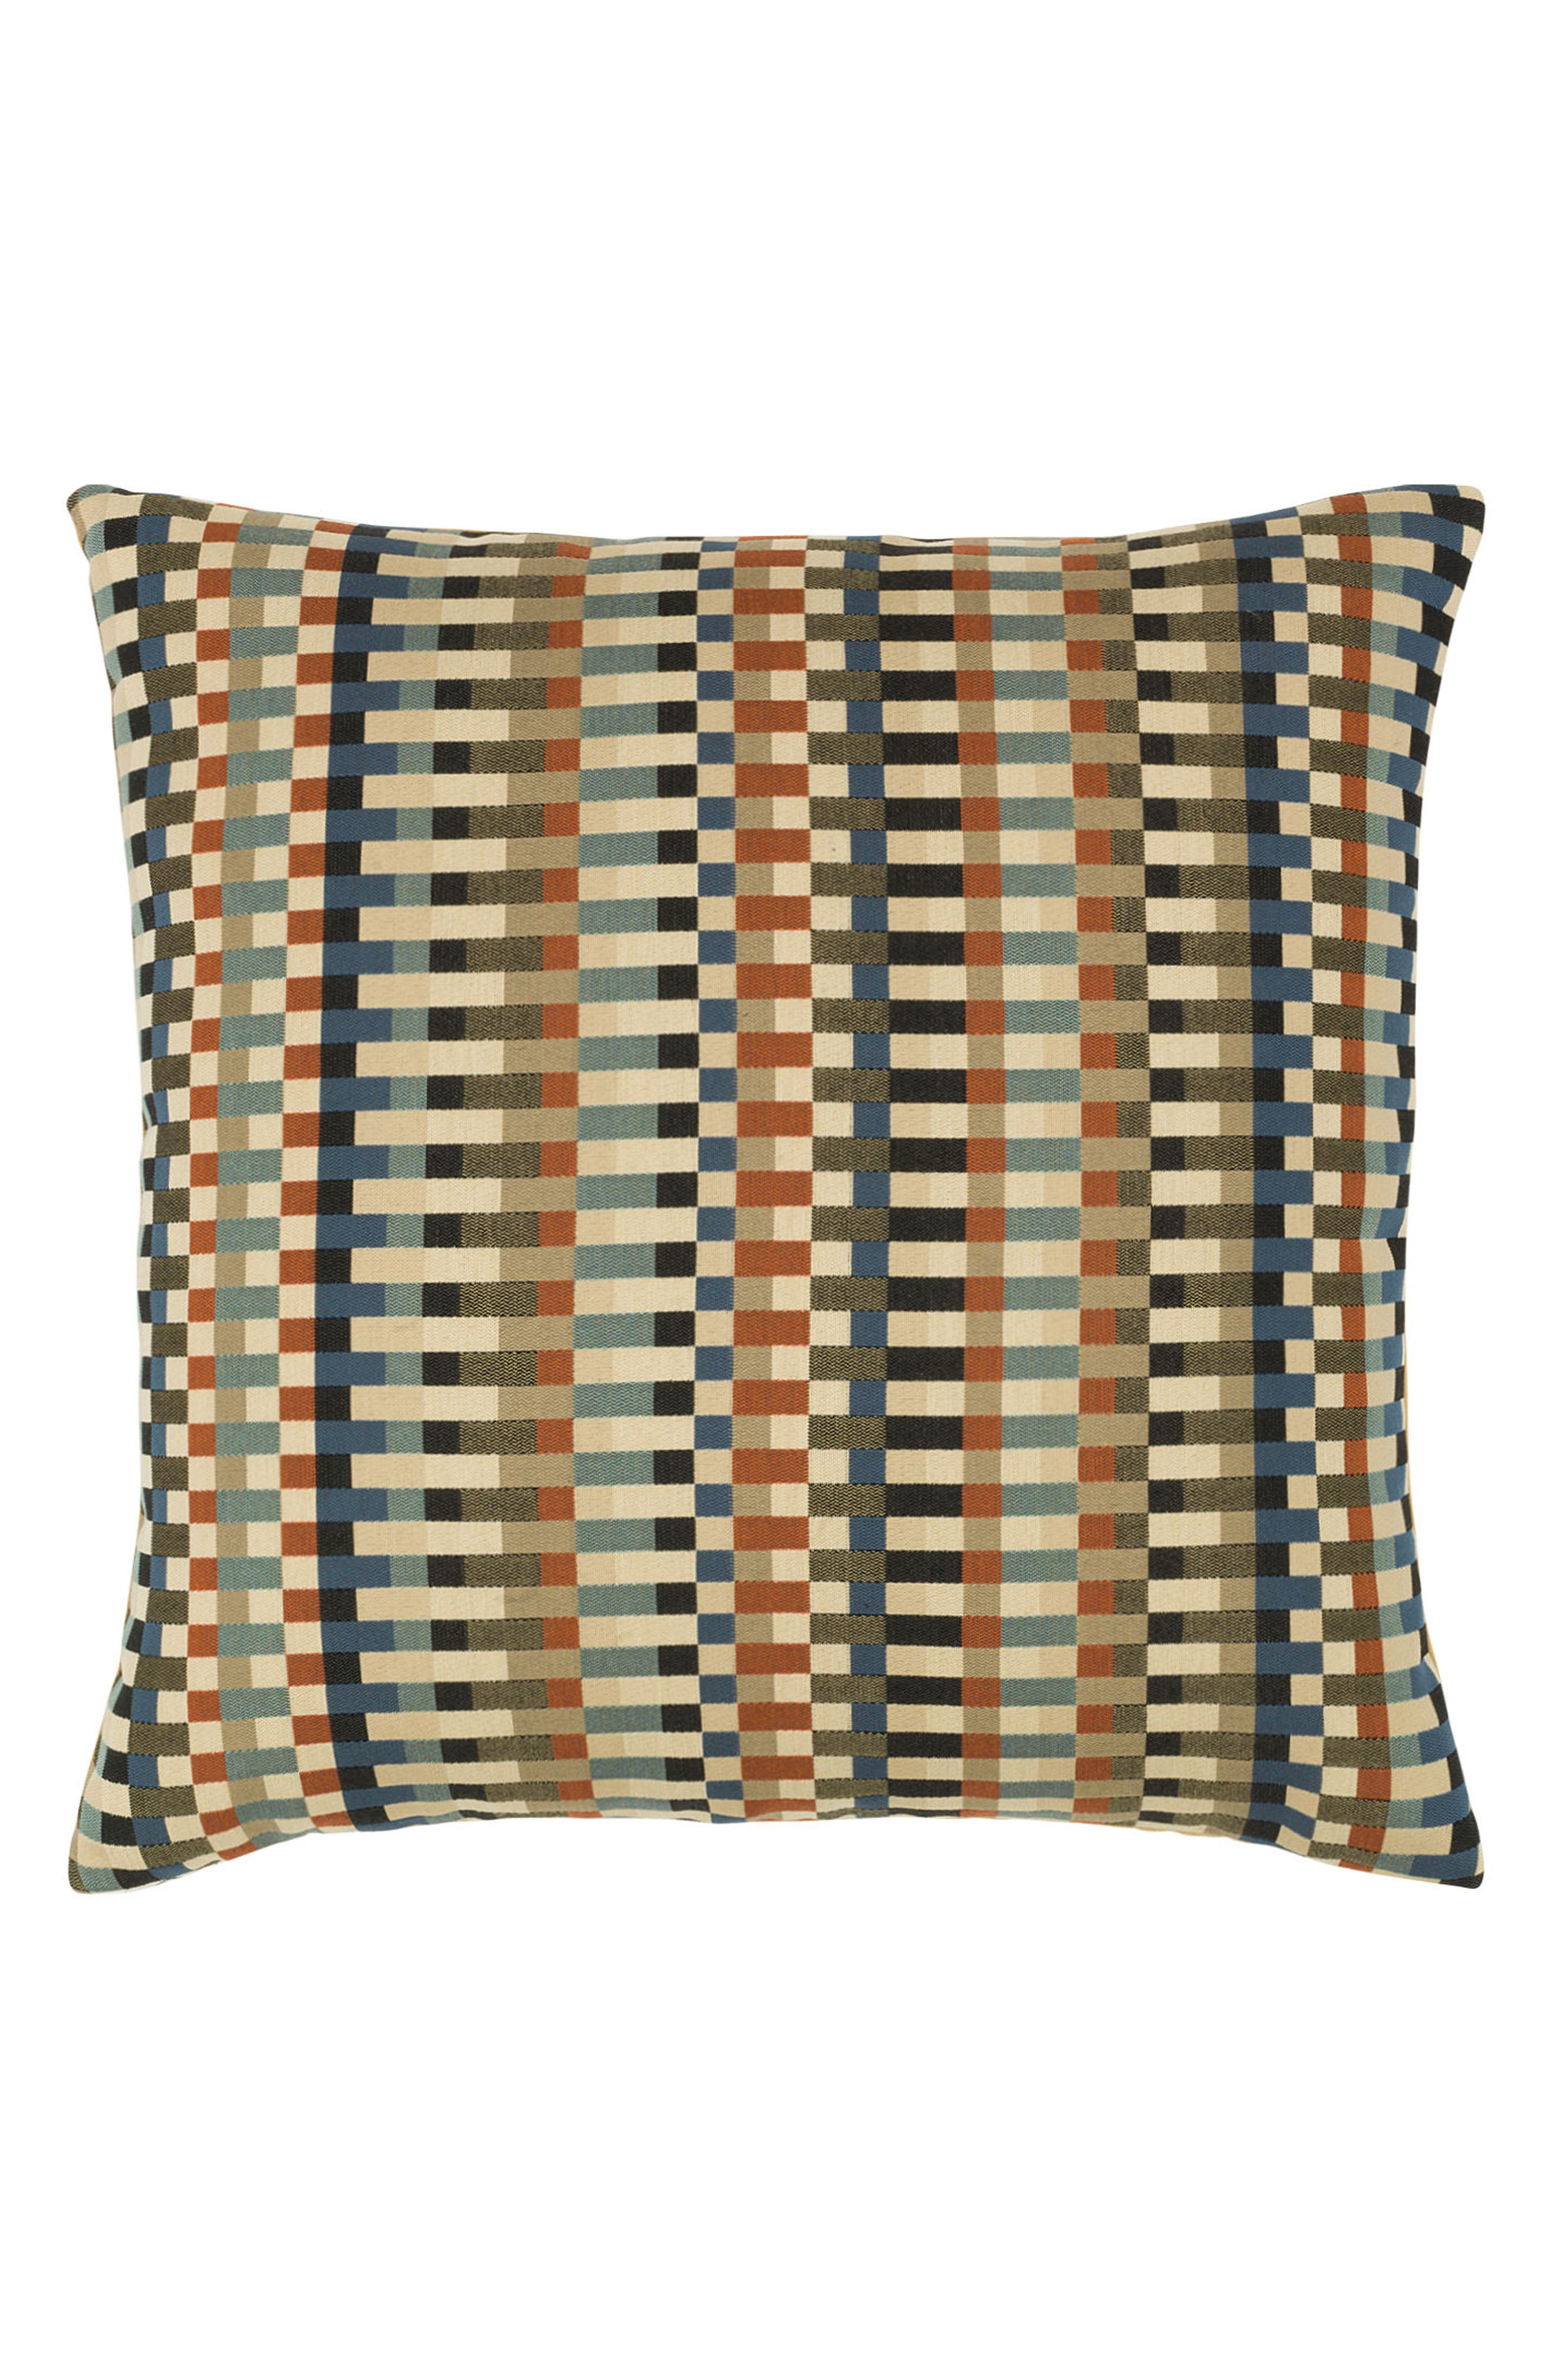 Copper Mountain Indoor/Outdoor Accent Pillow,                             Main thumbnail 1, color,                             200